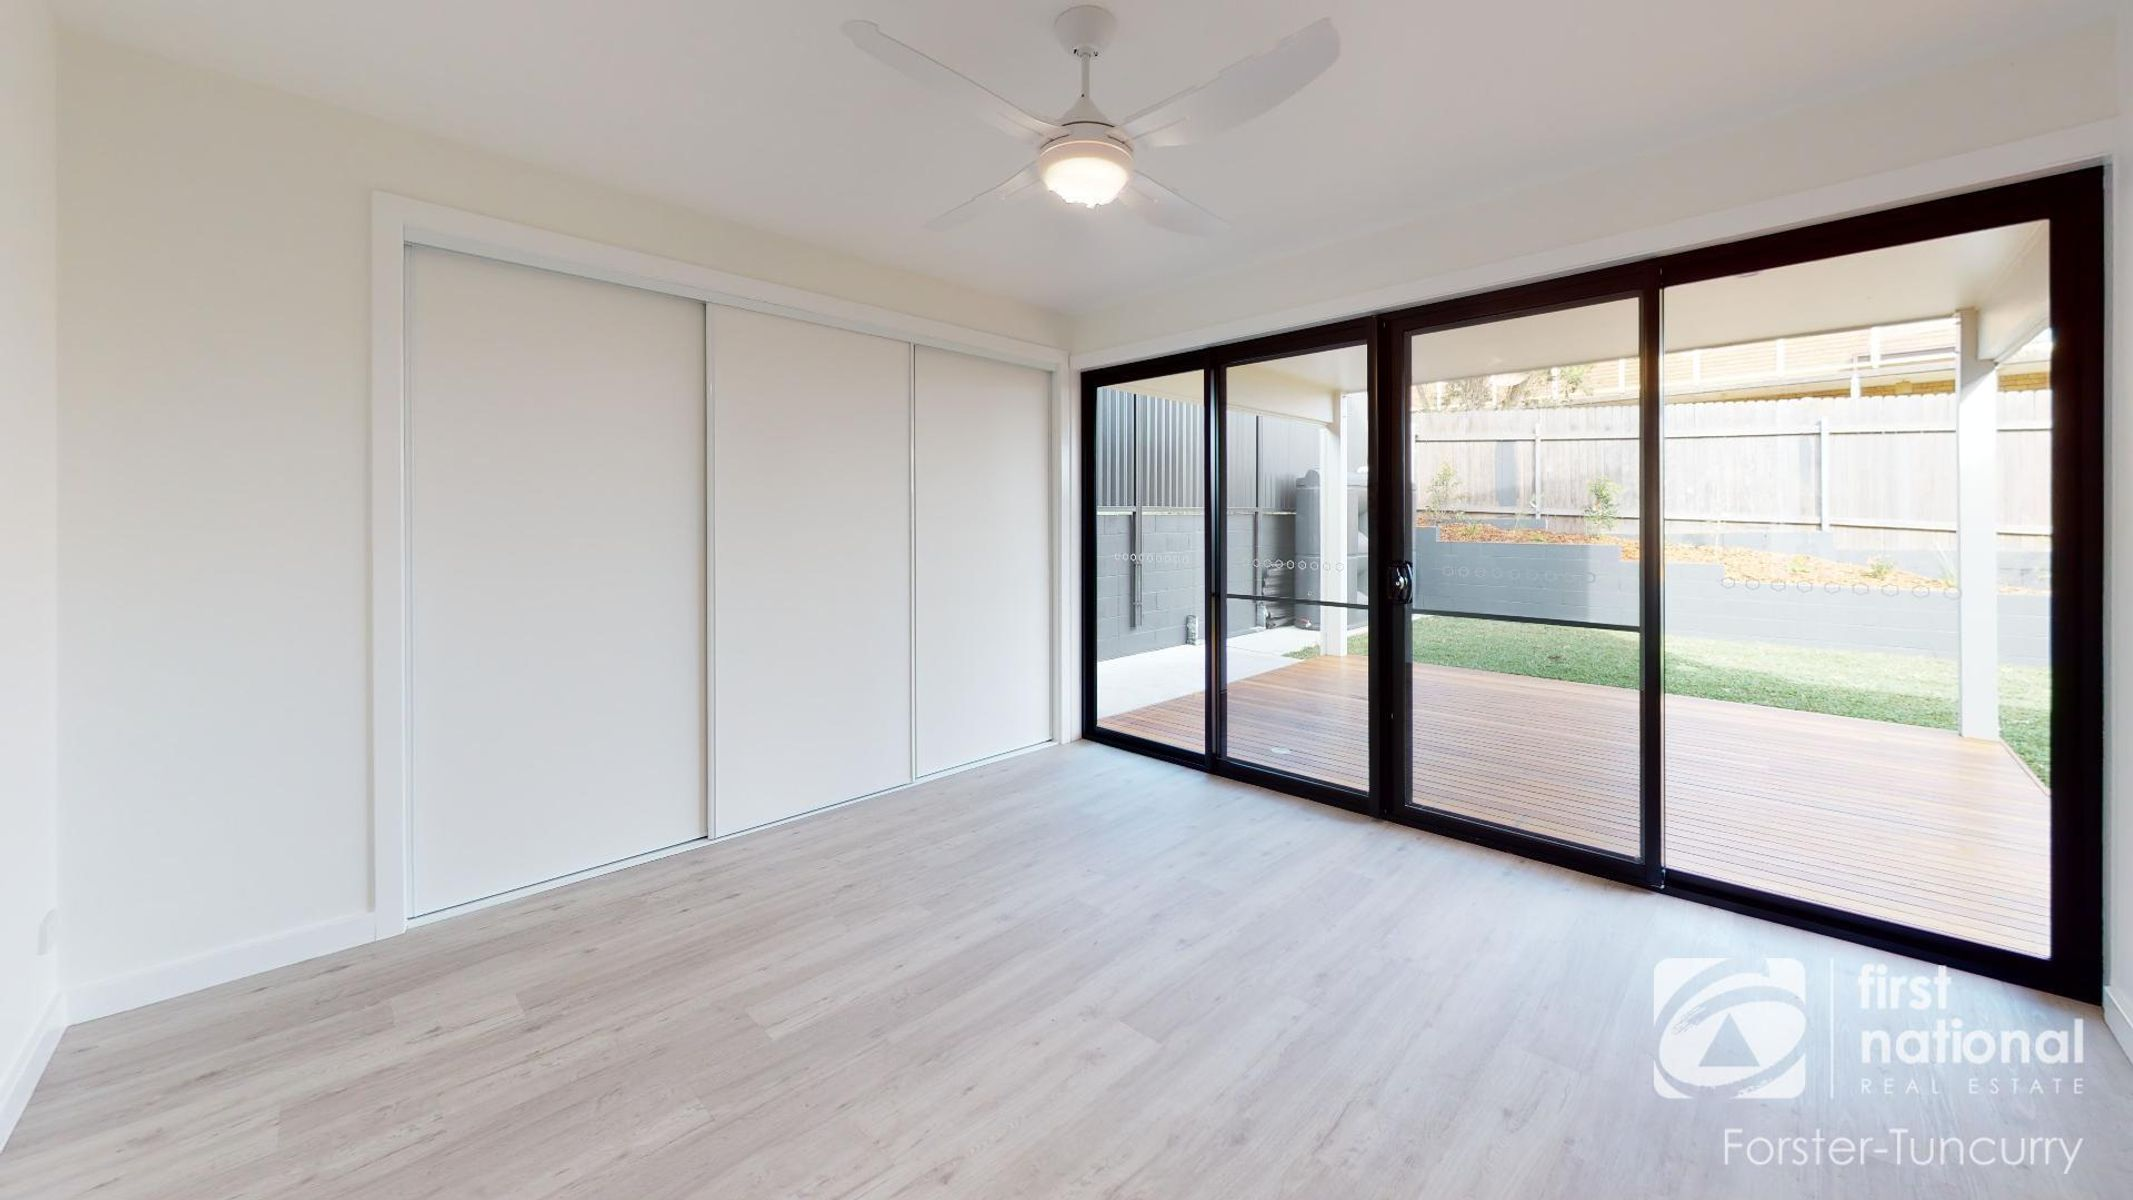 1/109 Becker Road, Forster, NSW 2428